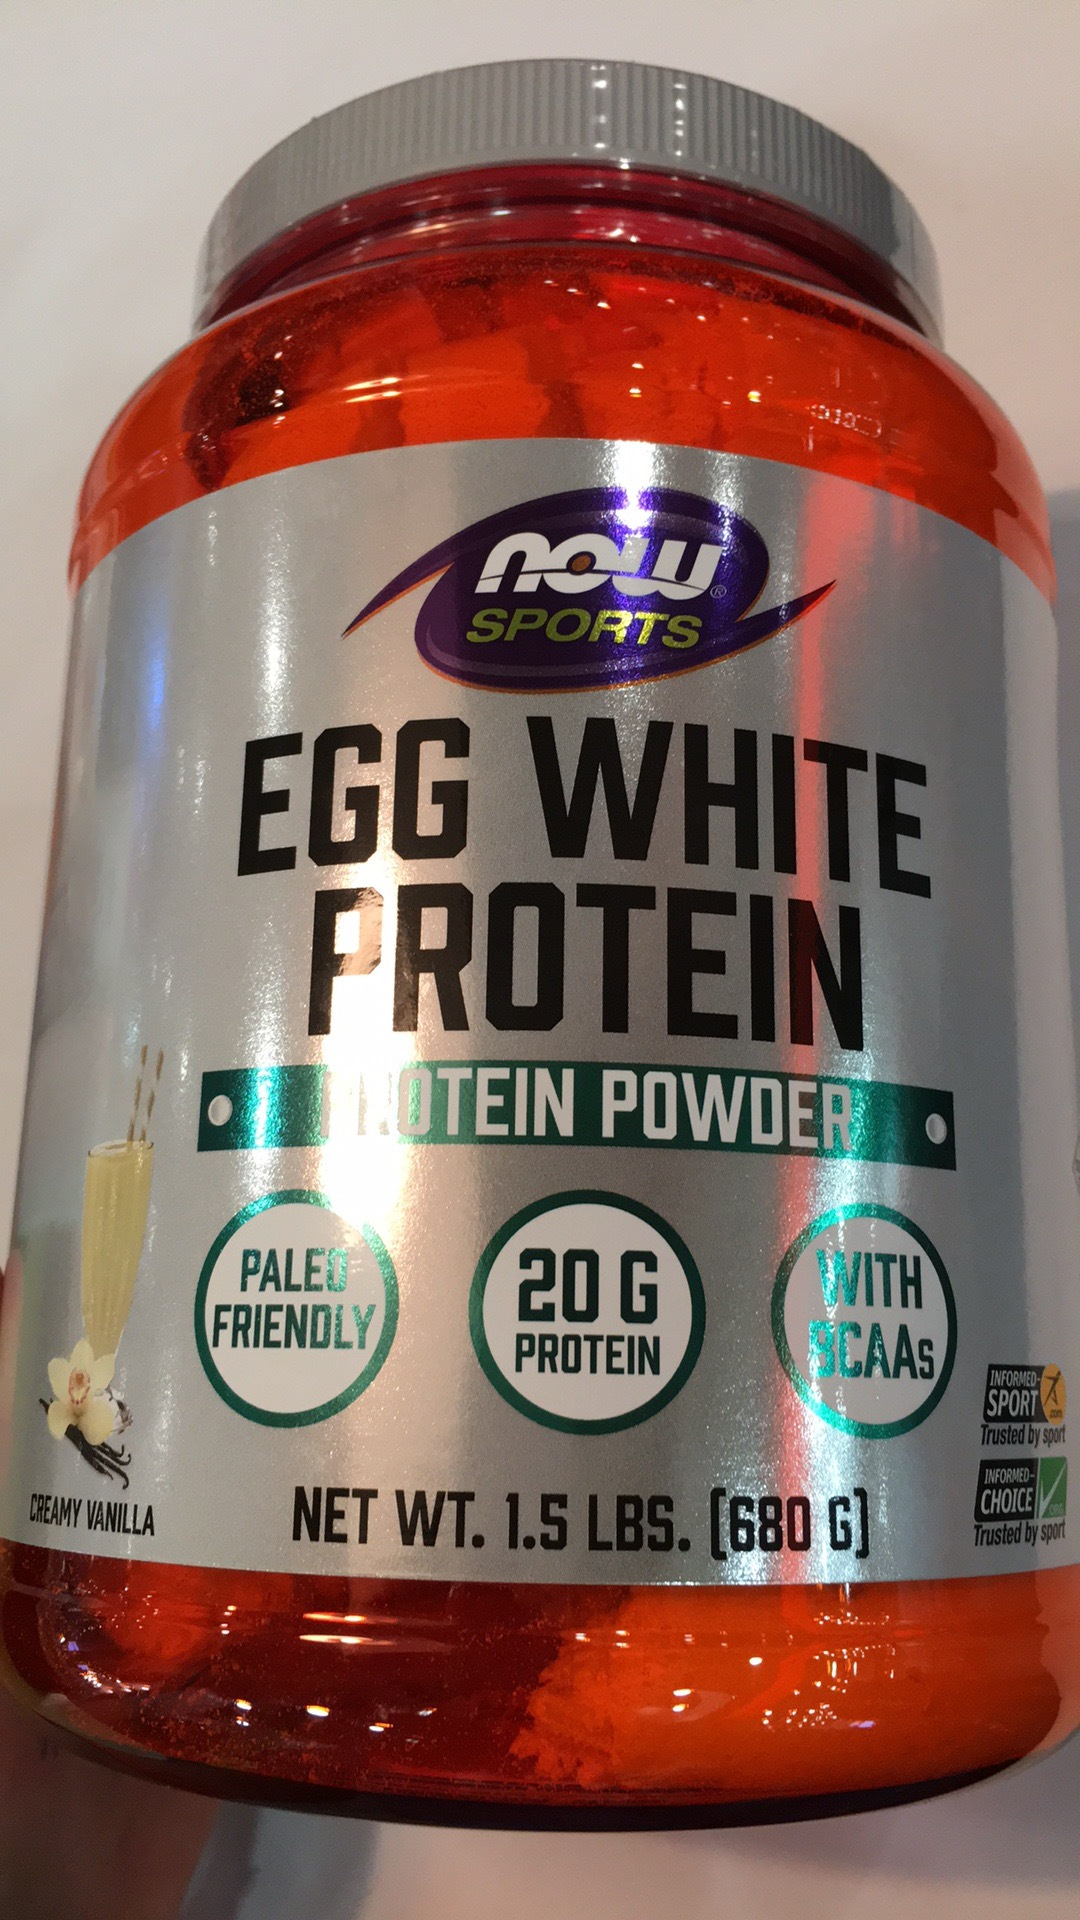 It's just a picture of Universal White Label Protein Powder